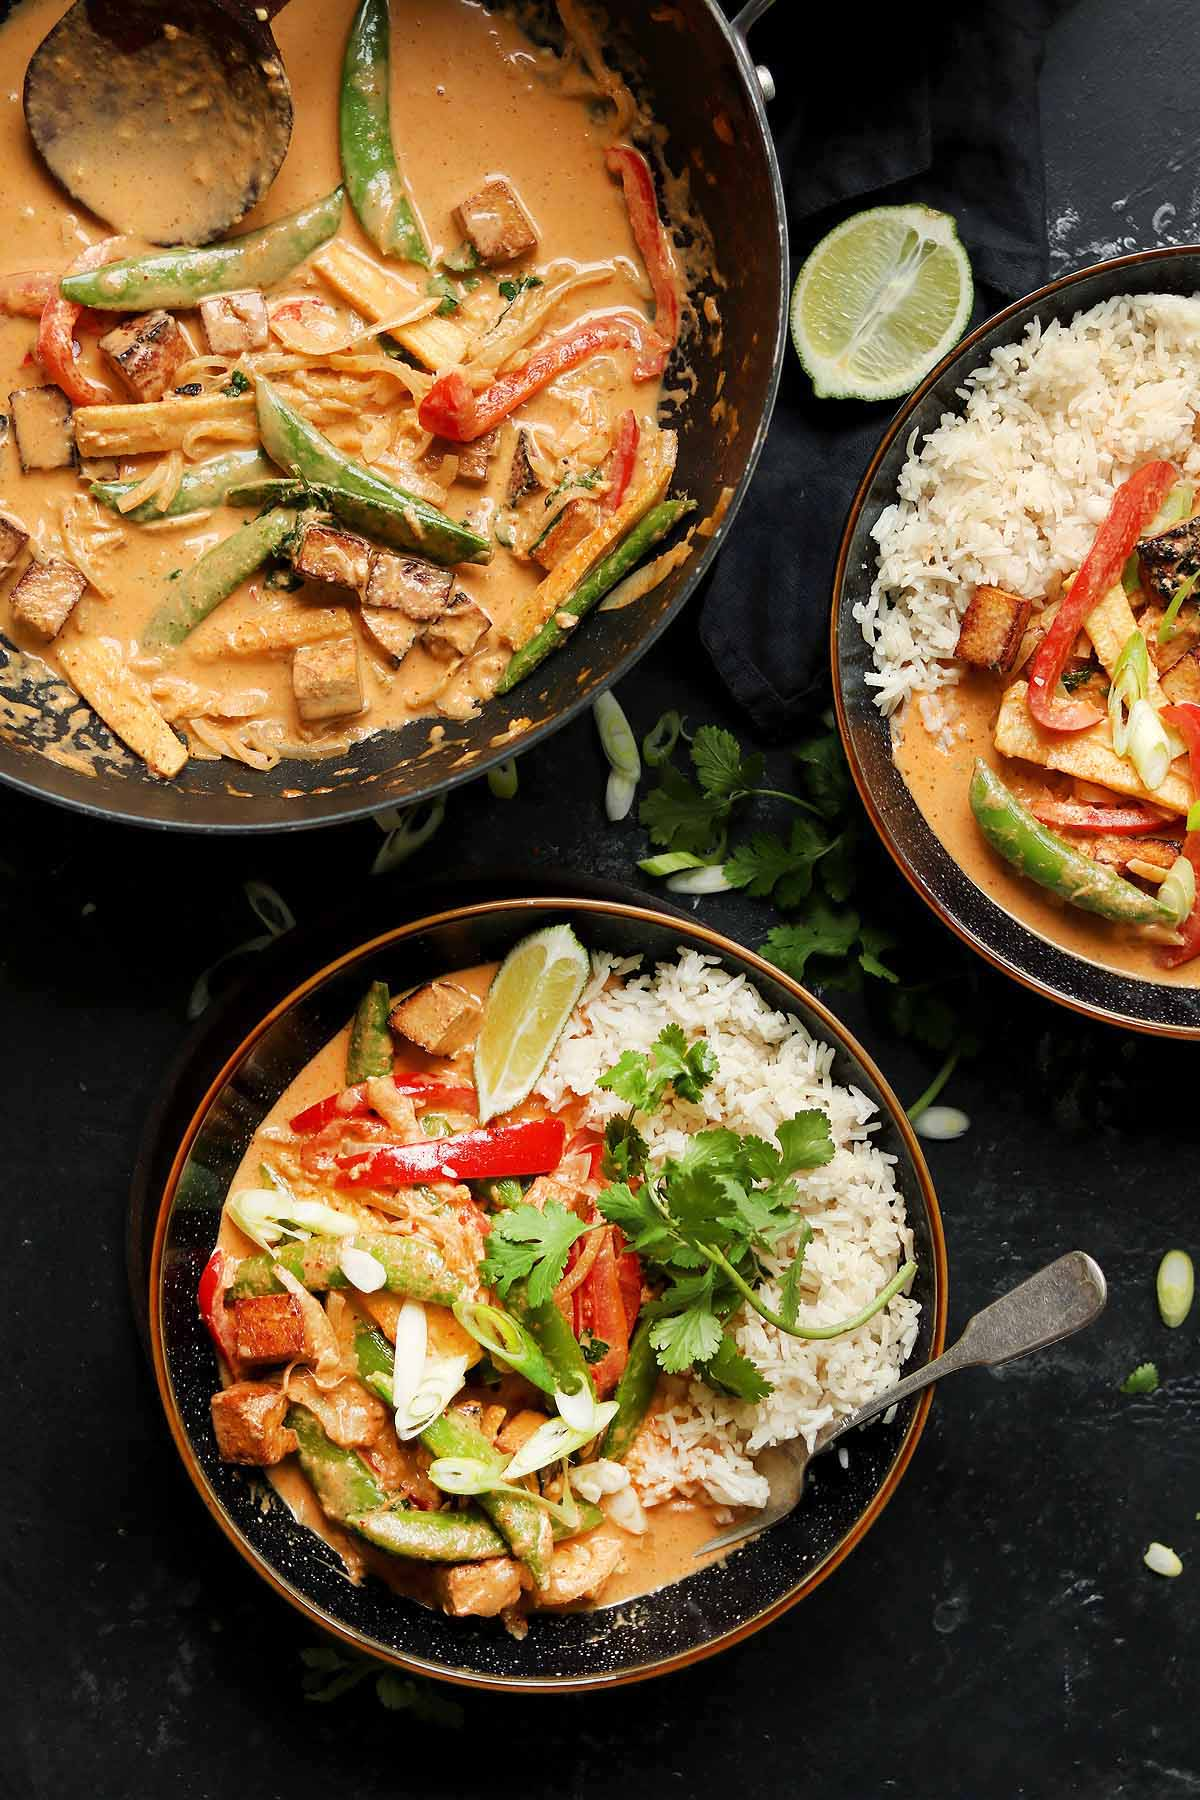 Marinated crispy tofu with peppers in a Thai red curry sauce, with rice and coriander garnish in bowls.